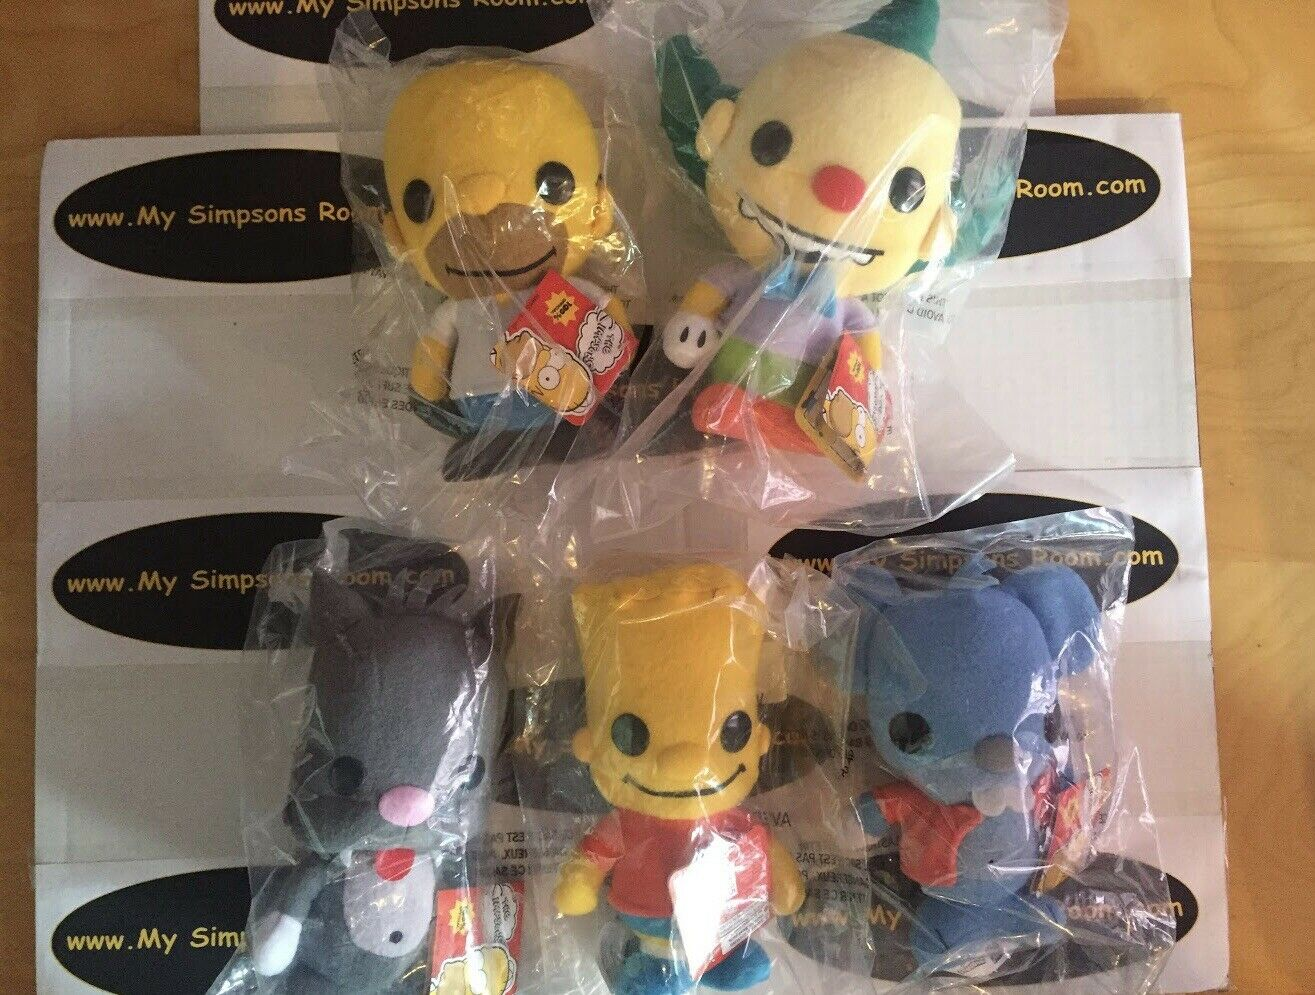 Set of 5 - The Simpsons Funko Plushies - Bart Bart Bart Homer Krusty Scratchy Itchy 7  NWT 2b8761